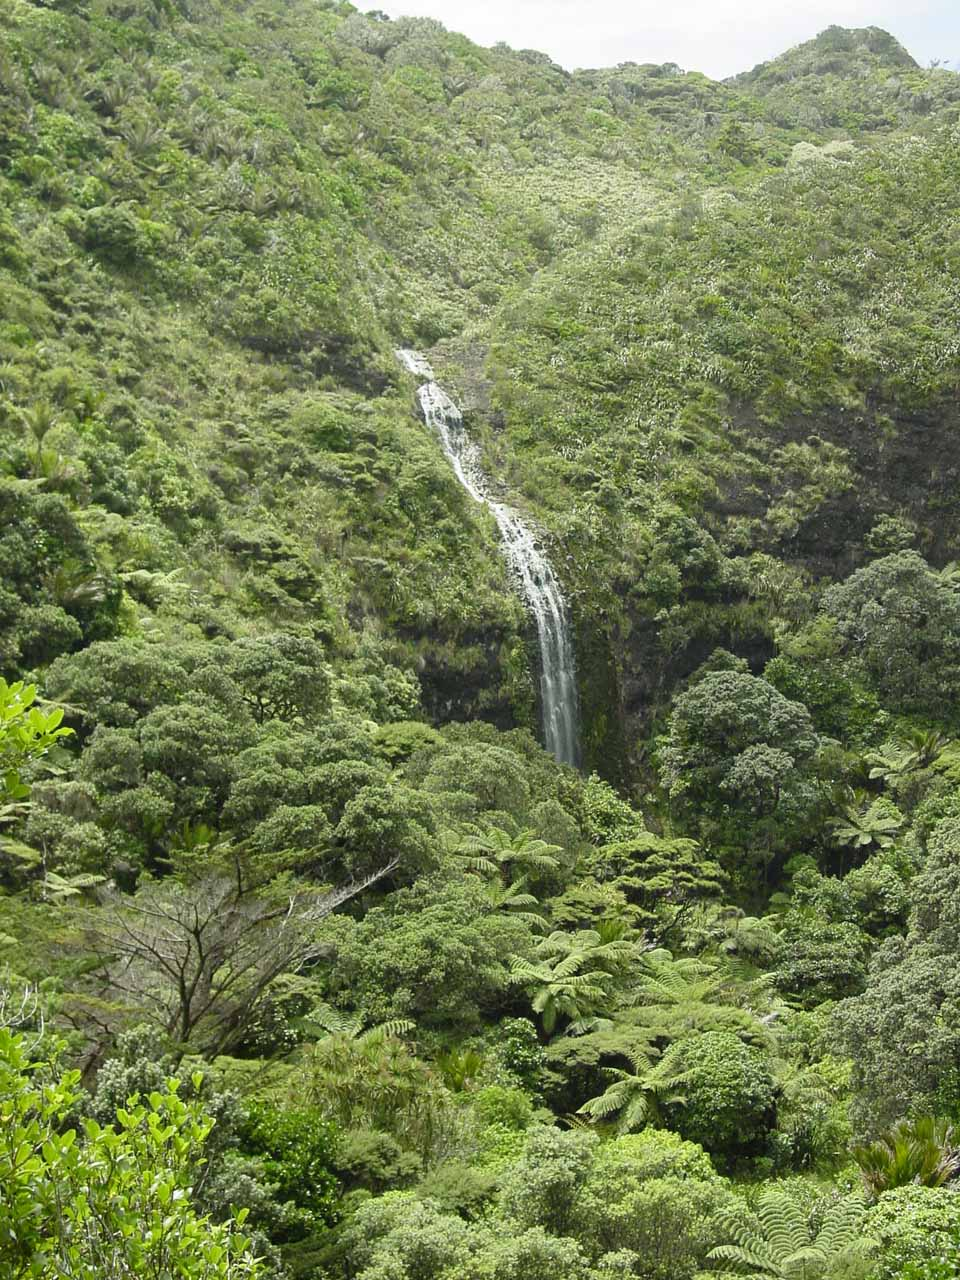 As I was descending towards the base of Karekare Falls, I got this view of it, which showed that there was much more to this waterfall than its main drop